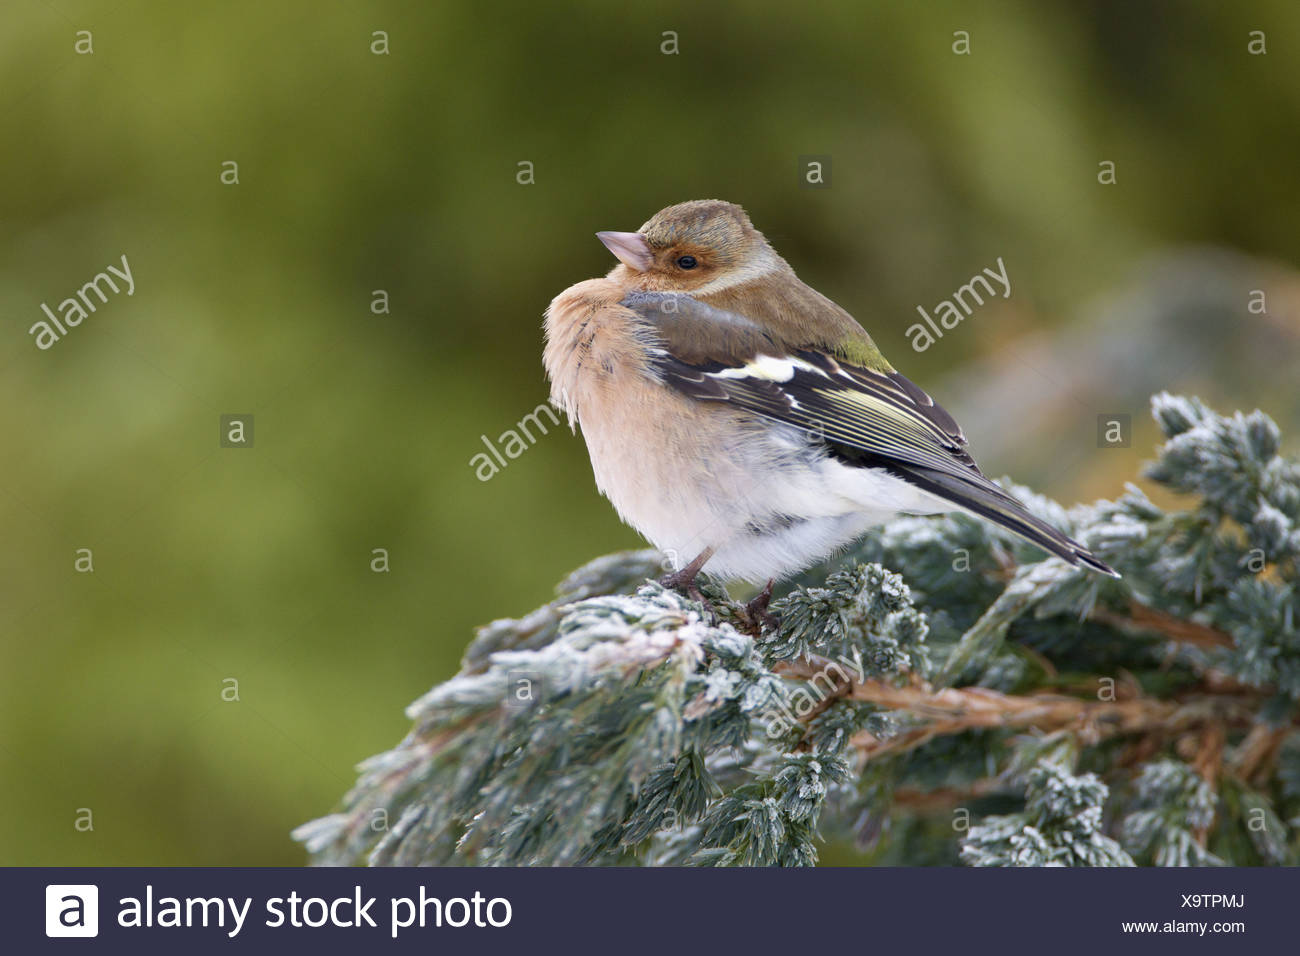 Chaffinch Fringilla coelebs adult male feathers fluffed up perched snow covered conifer shrub garden Chirnside Berwickshire - Stock Image